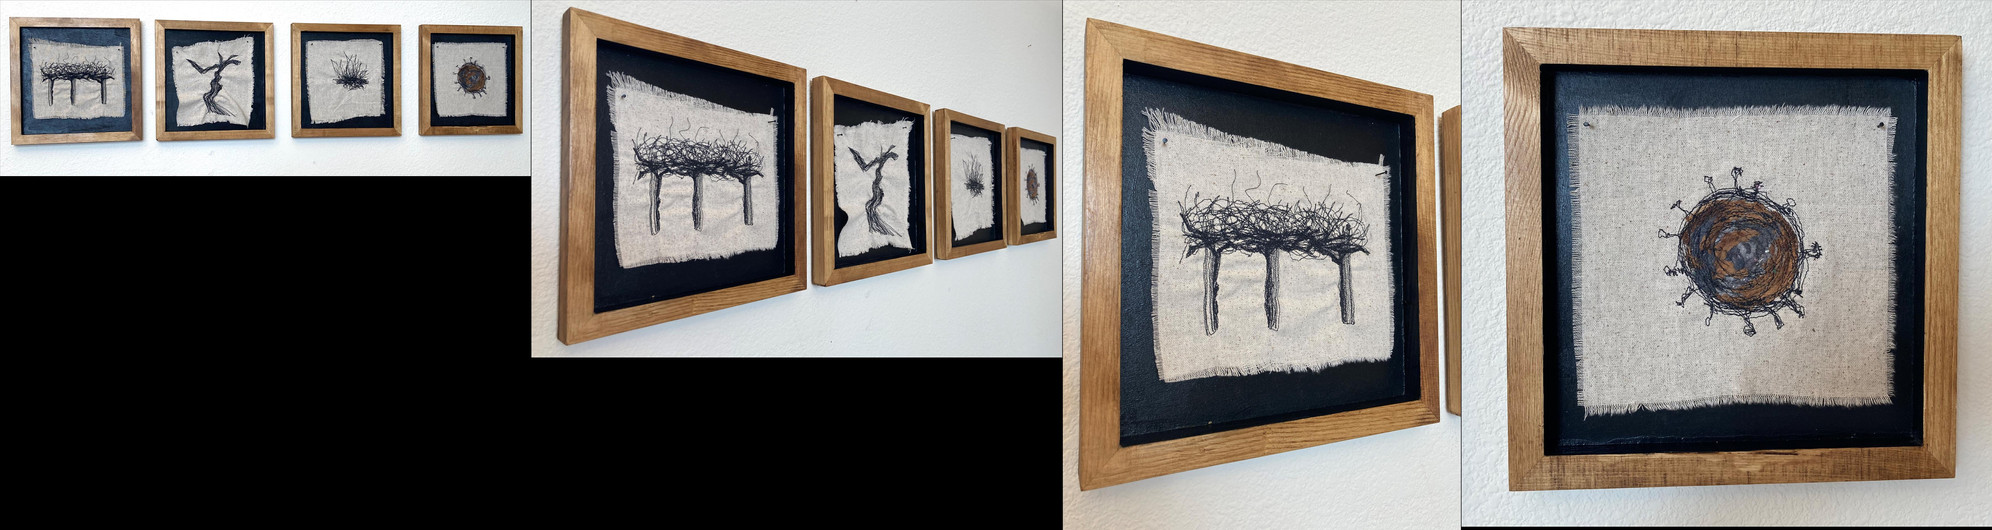 """Michelle Park (Turlock) A California Story (Interrupted) Honorable Mention embroidered cloth with mixed media on wood, 10"""" x 44"""" x 0.75"""" $195"""